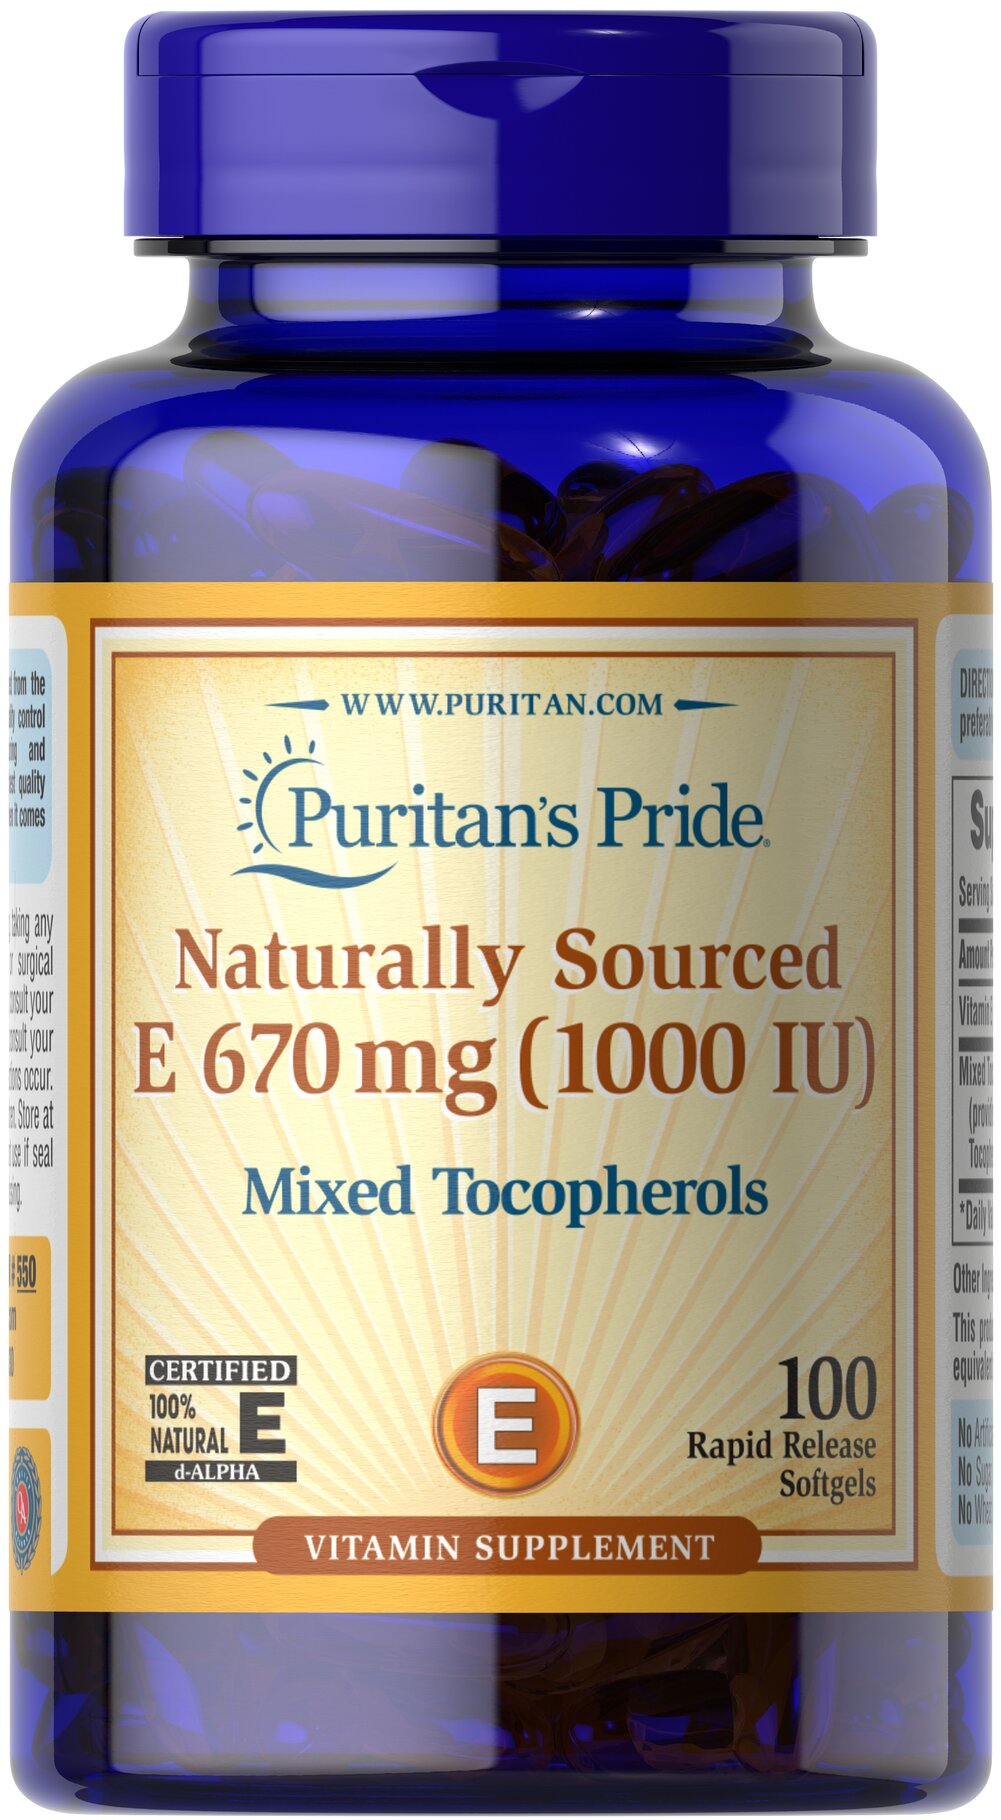 Vitamin E-1000 IU Mixed Tocopherols Natural <p><b>Vitamin E</b> promotes immune function and helps support cardiovascular health.** Vitamin E is also a powerful <b>antioxidant</b> that helps fight cell-damaging free radicals in the body.** Studies have shown that oxidative stress caused by free radicals may contribute to the premature aging of cells.**</p> 100 Softgels 1000 IU $45.99